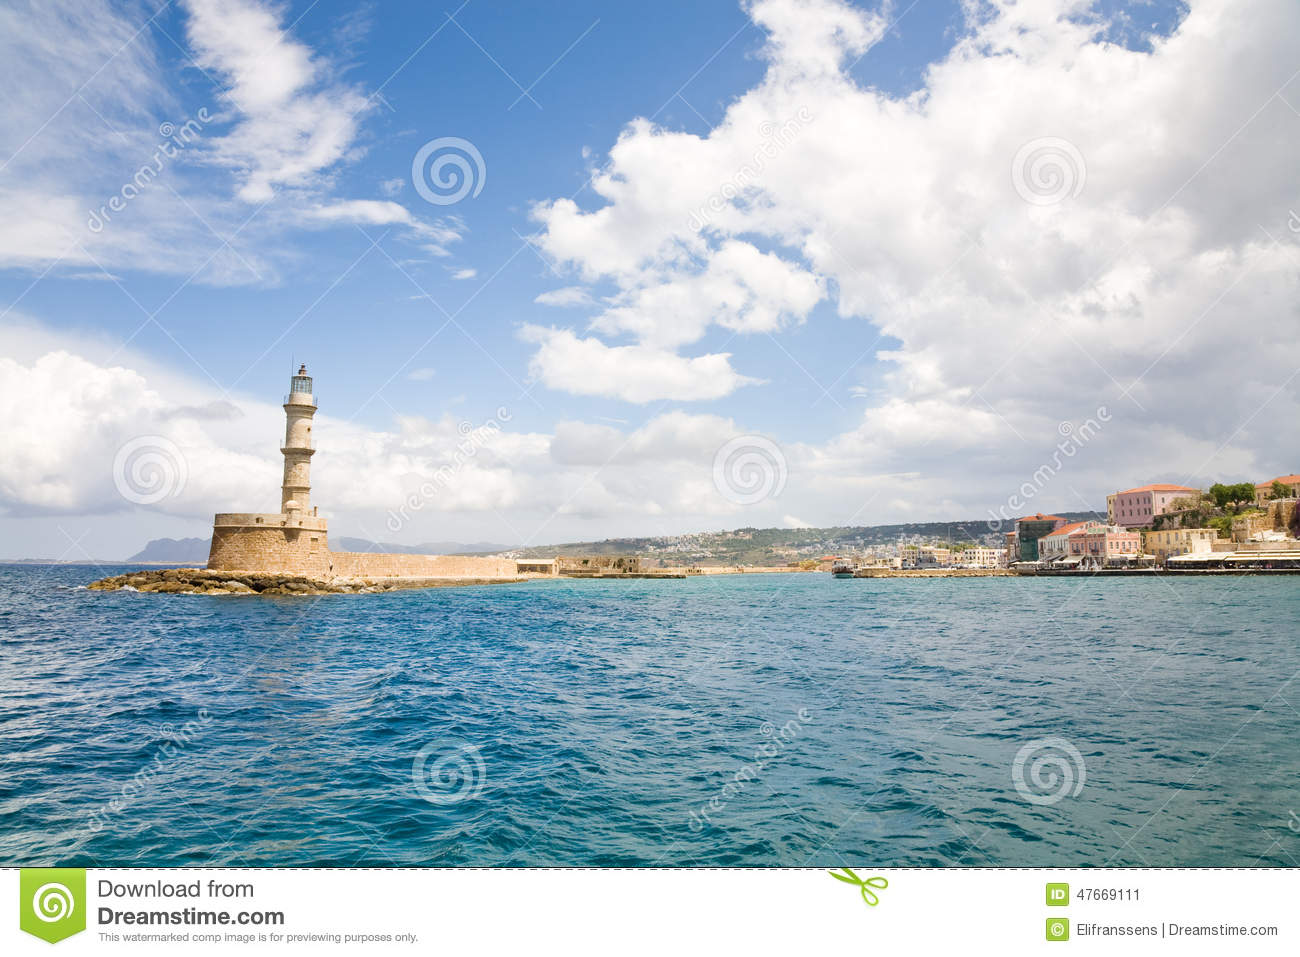 Harbor Of Old Town Chania Stock Photo - Image: 47669111